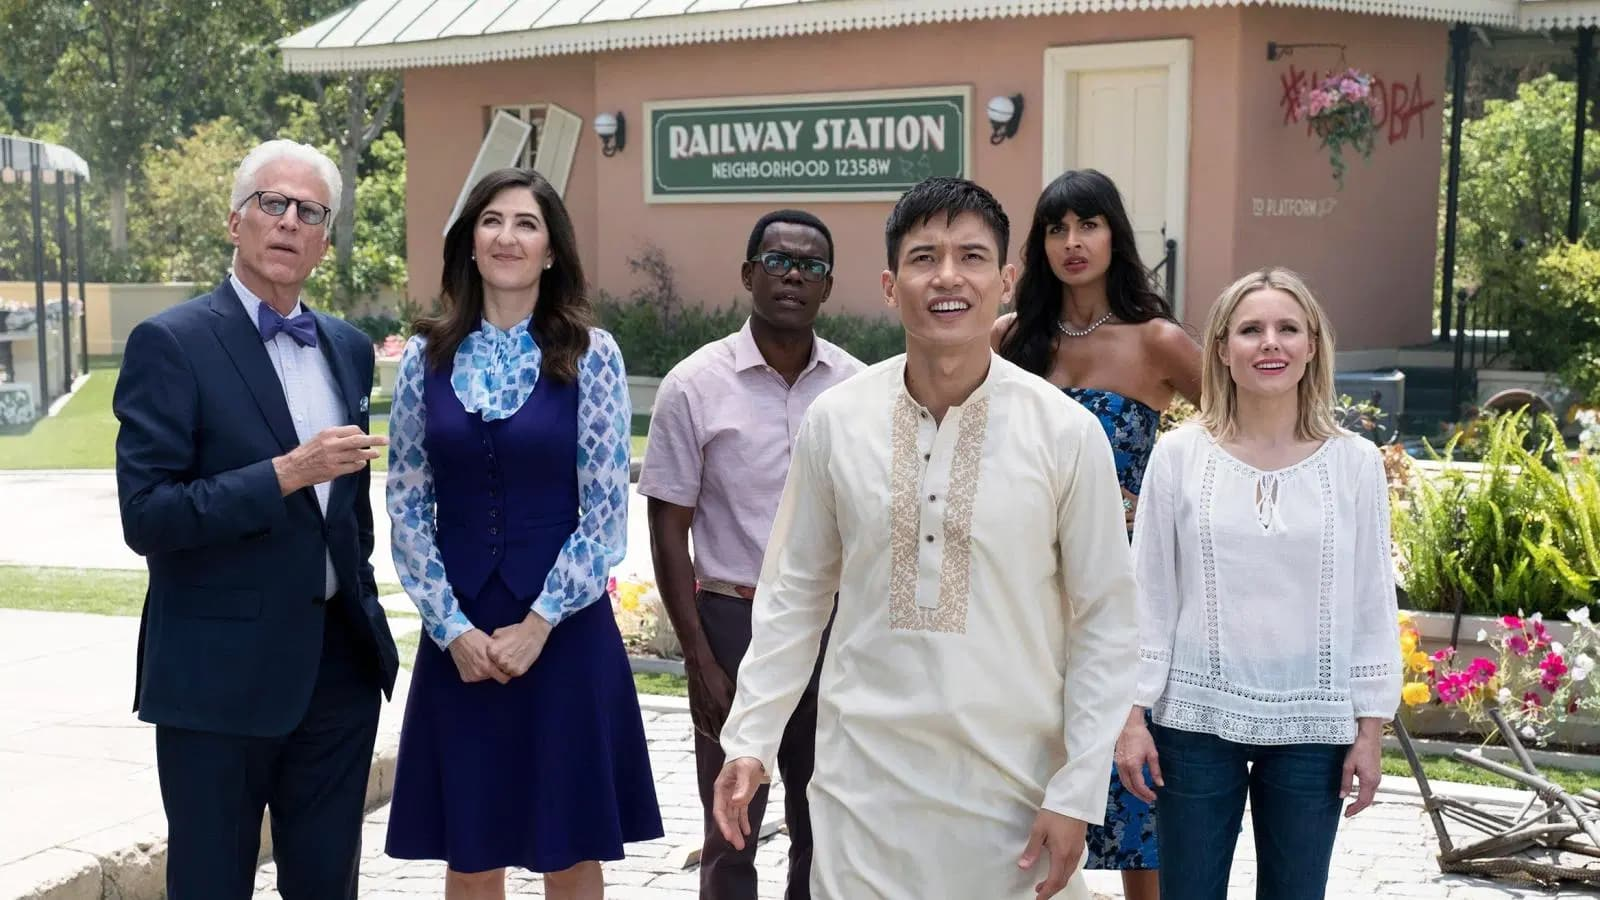 Star Trek: The Next Generation optimism in Michael Schur: The Good Place, Brooklyn Nine-Nine, Parks and Recreation